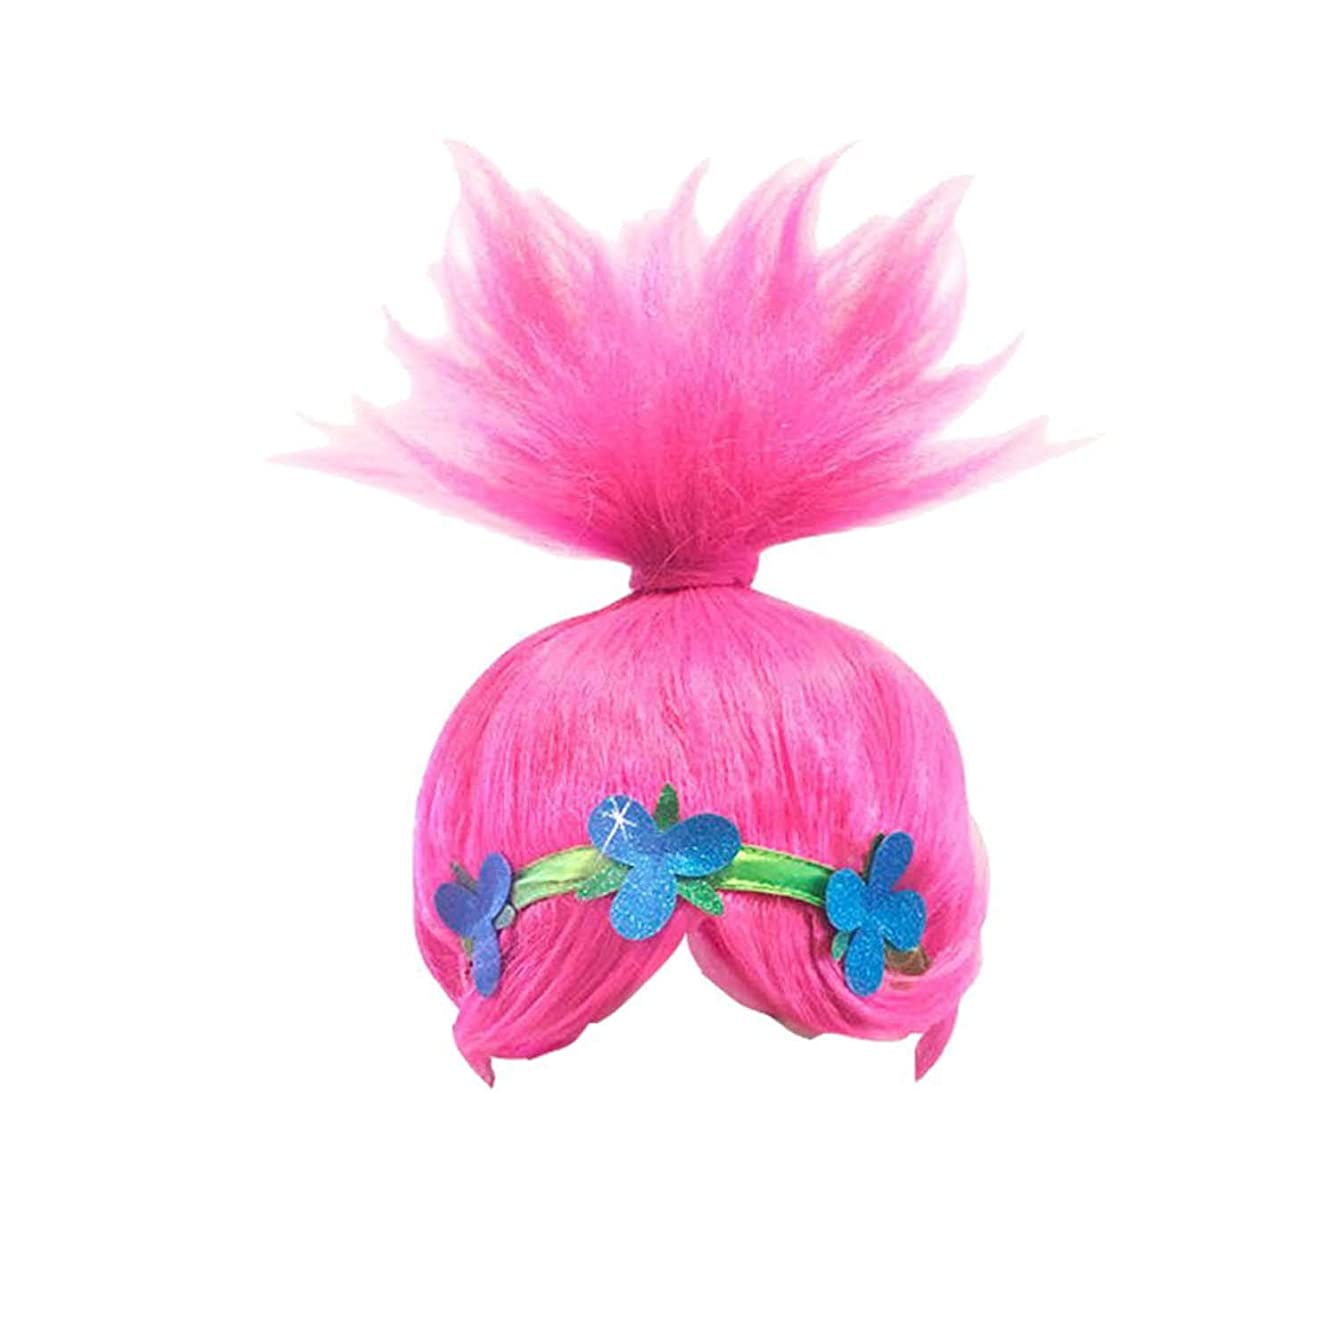 Pink Trolls Poppy Costume Wigs Cosplay Wig Halloween Party Head Accessories for Women and Girls (8195)